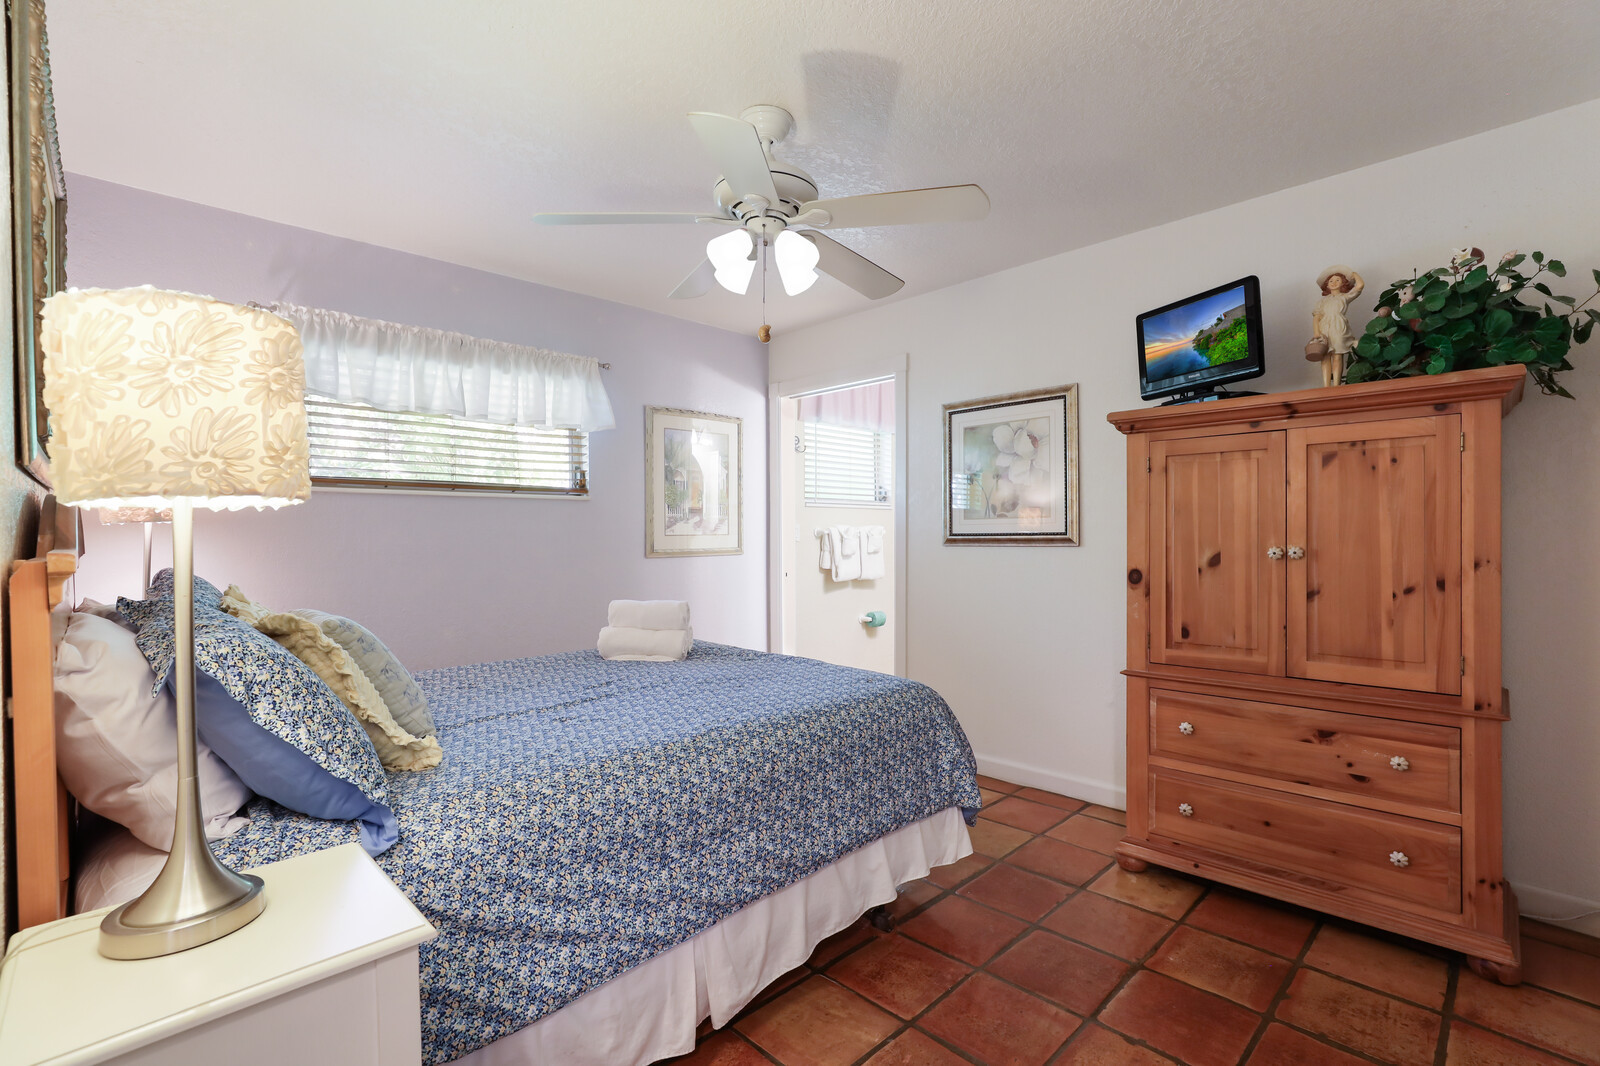 Frangipani Villa bedroom with attached